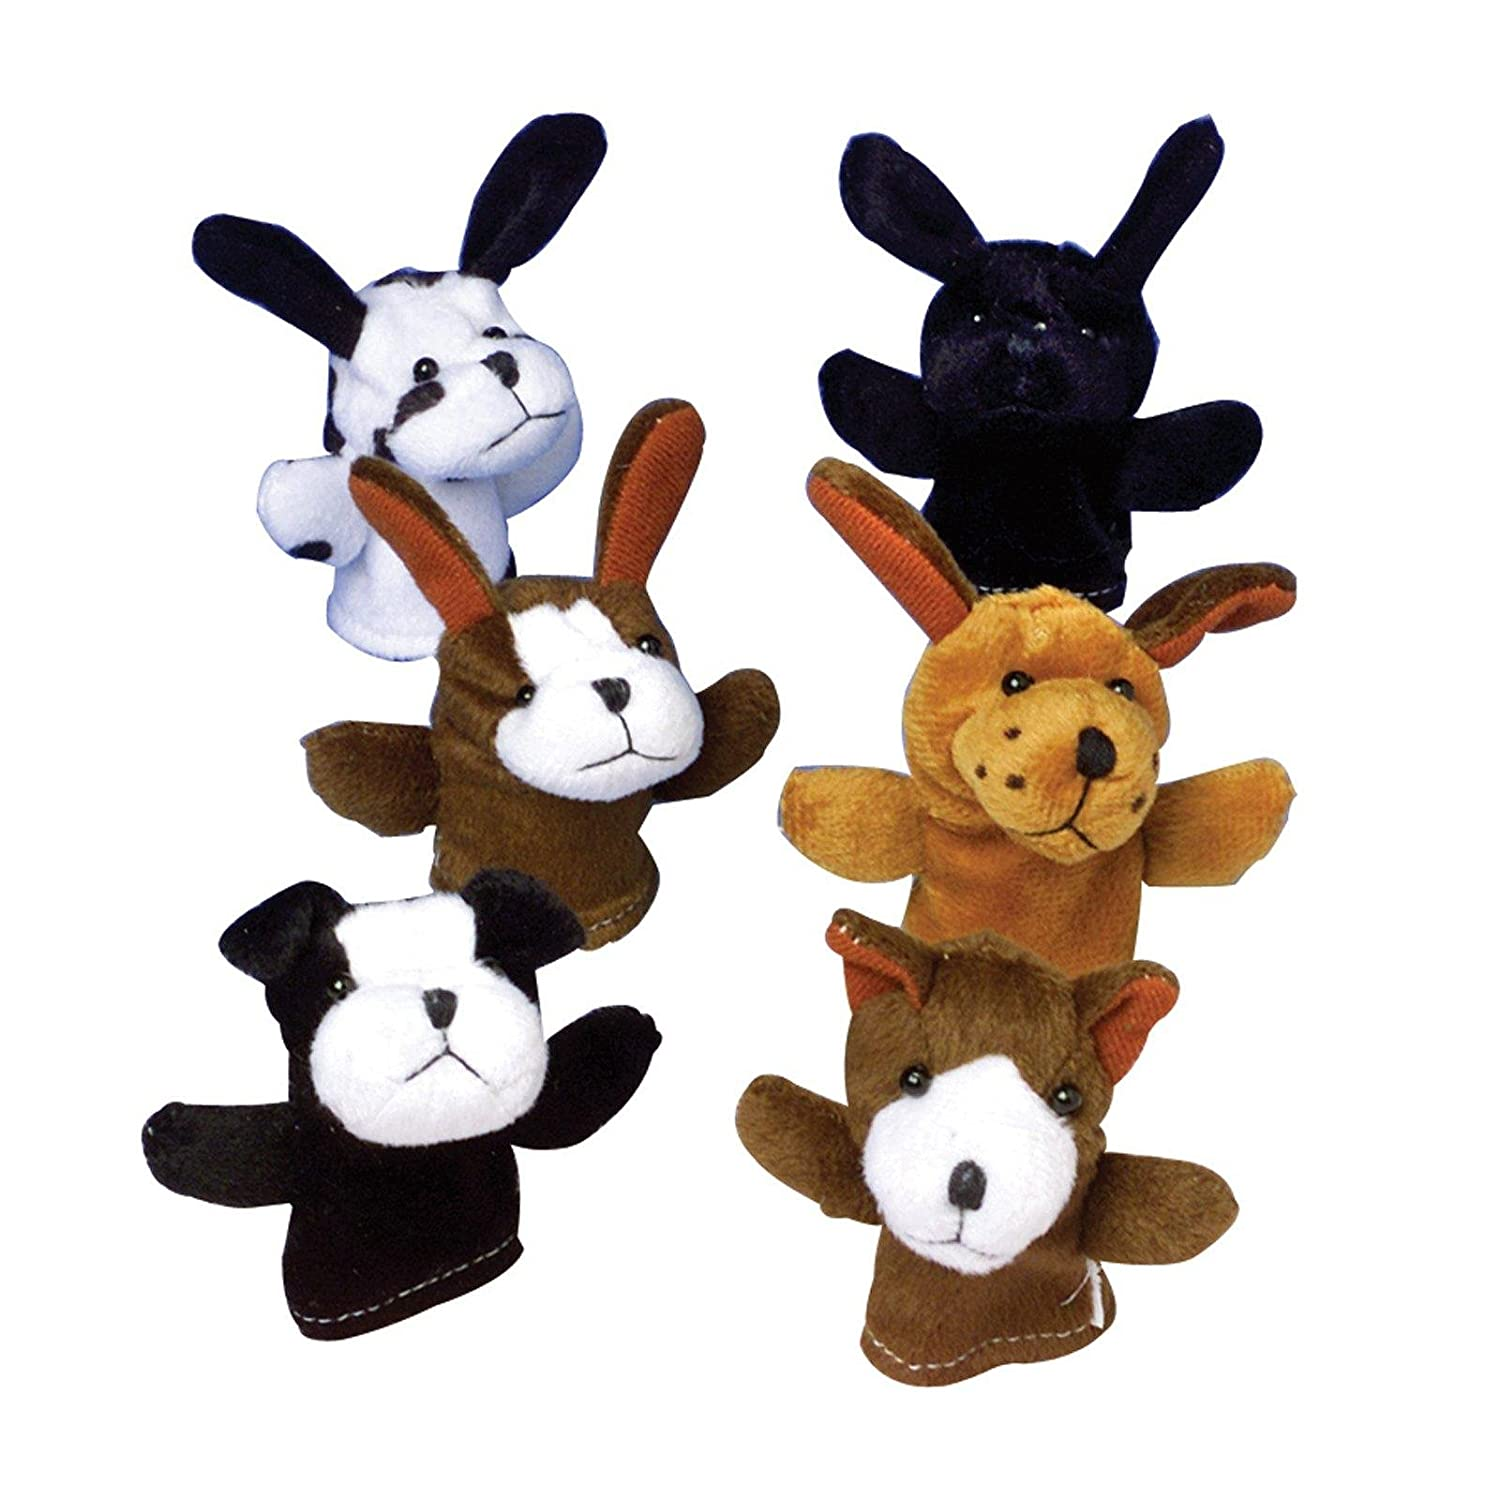 US Toy - Dog Finger Puppets-12 pieces U S Toy 1903494